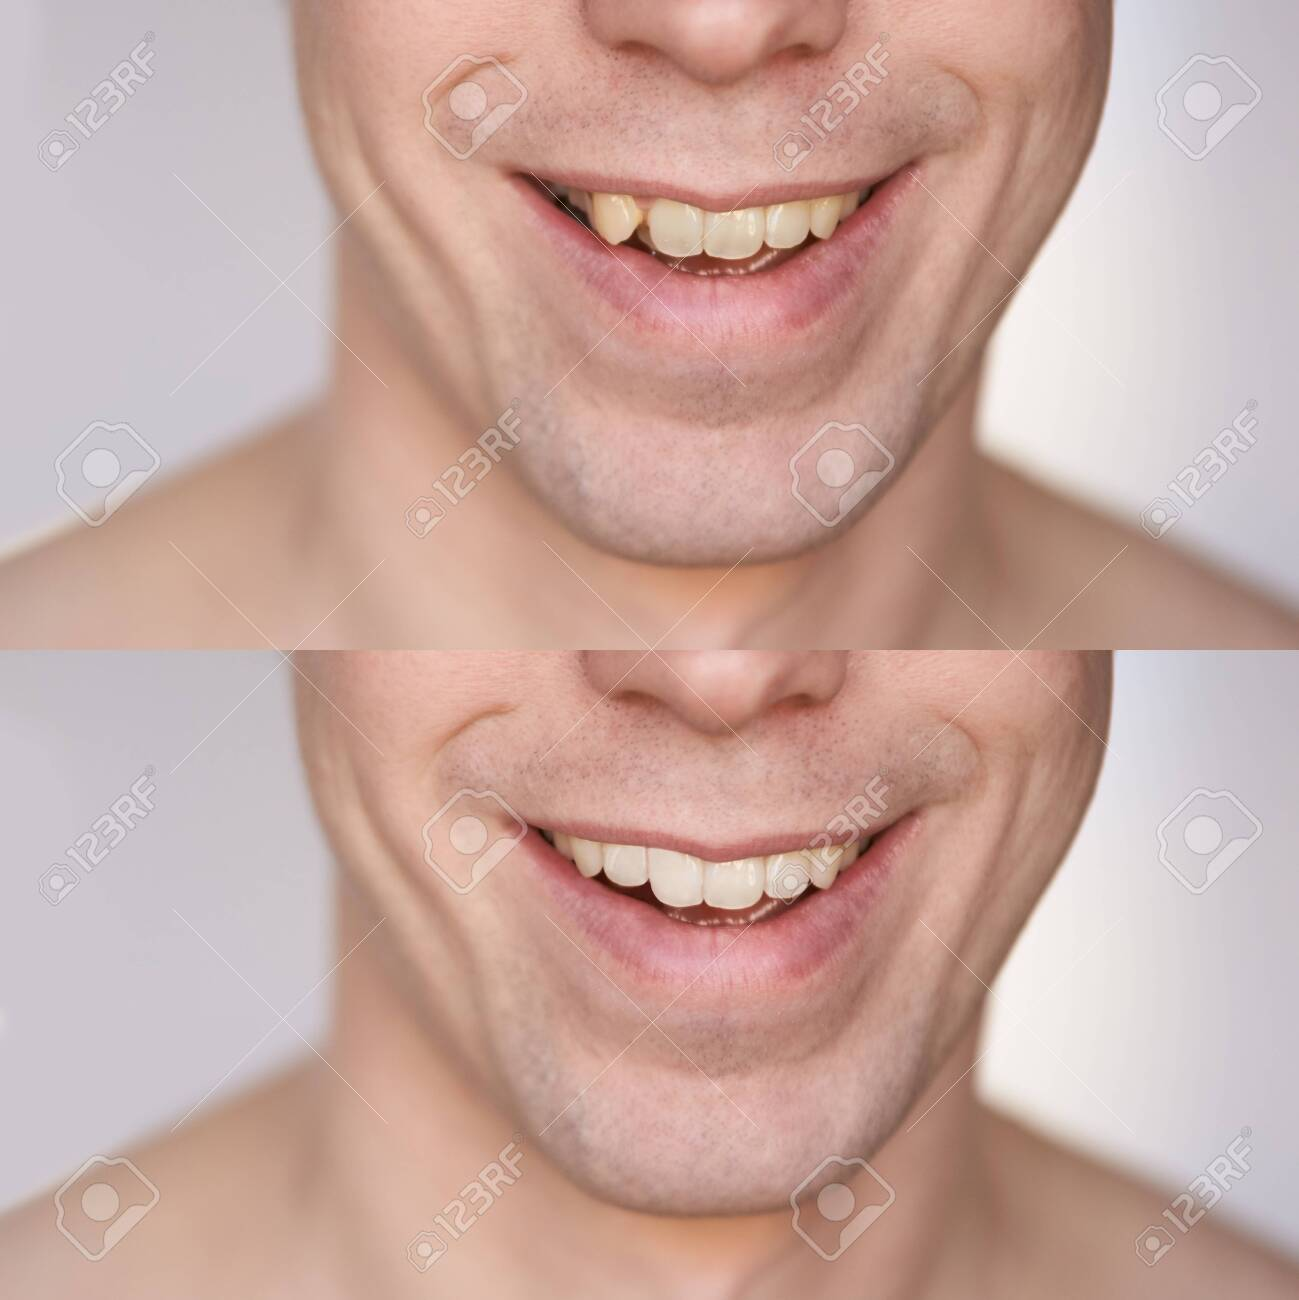 Before after braces concept. Man smile close up collage. Male person. Dental oral care procedure. Stomatology treatment - 143502380